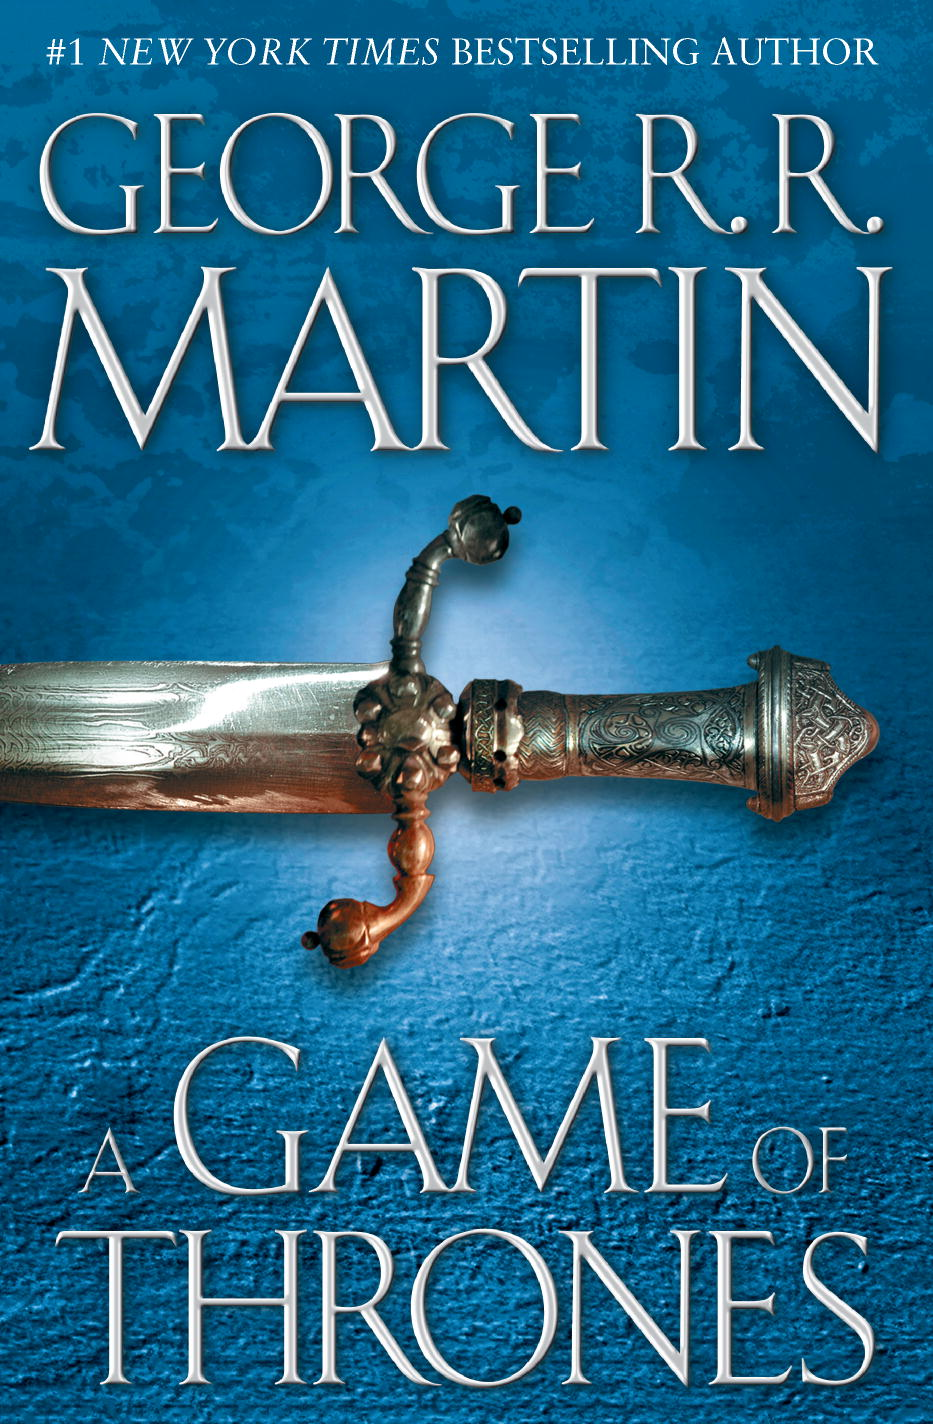 Image result for a game of thrones book cover art